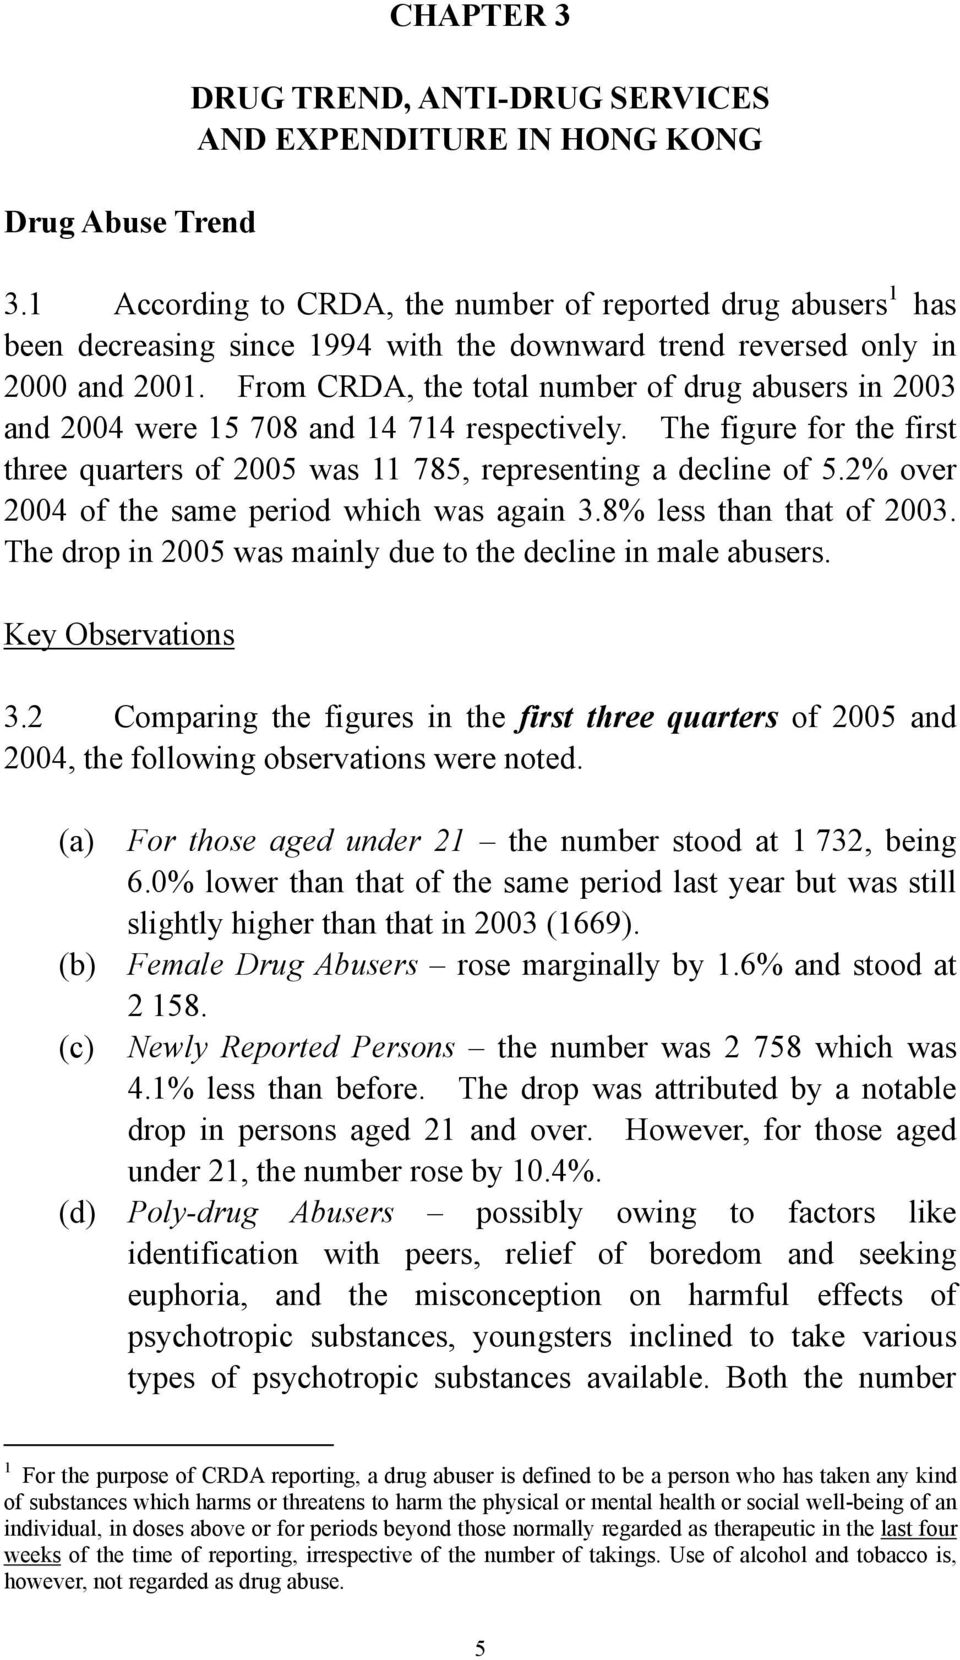 From CRDA, the total number of drug abusers in 2003 and 2004 were 15 708 and 14 714 respectively. The figure for the first three quarters of 2005 was 11 785, representing a decline of 5.